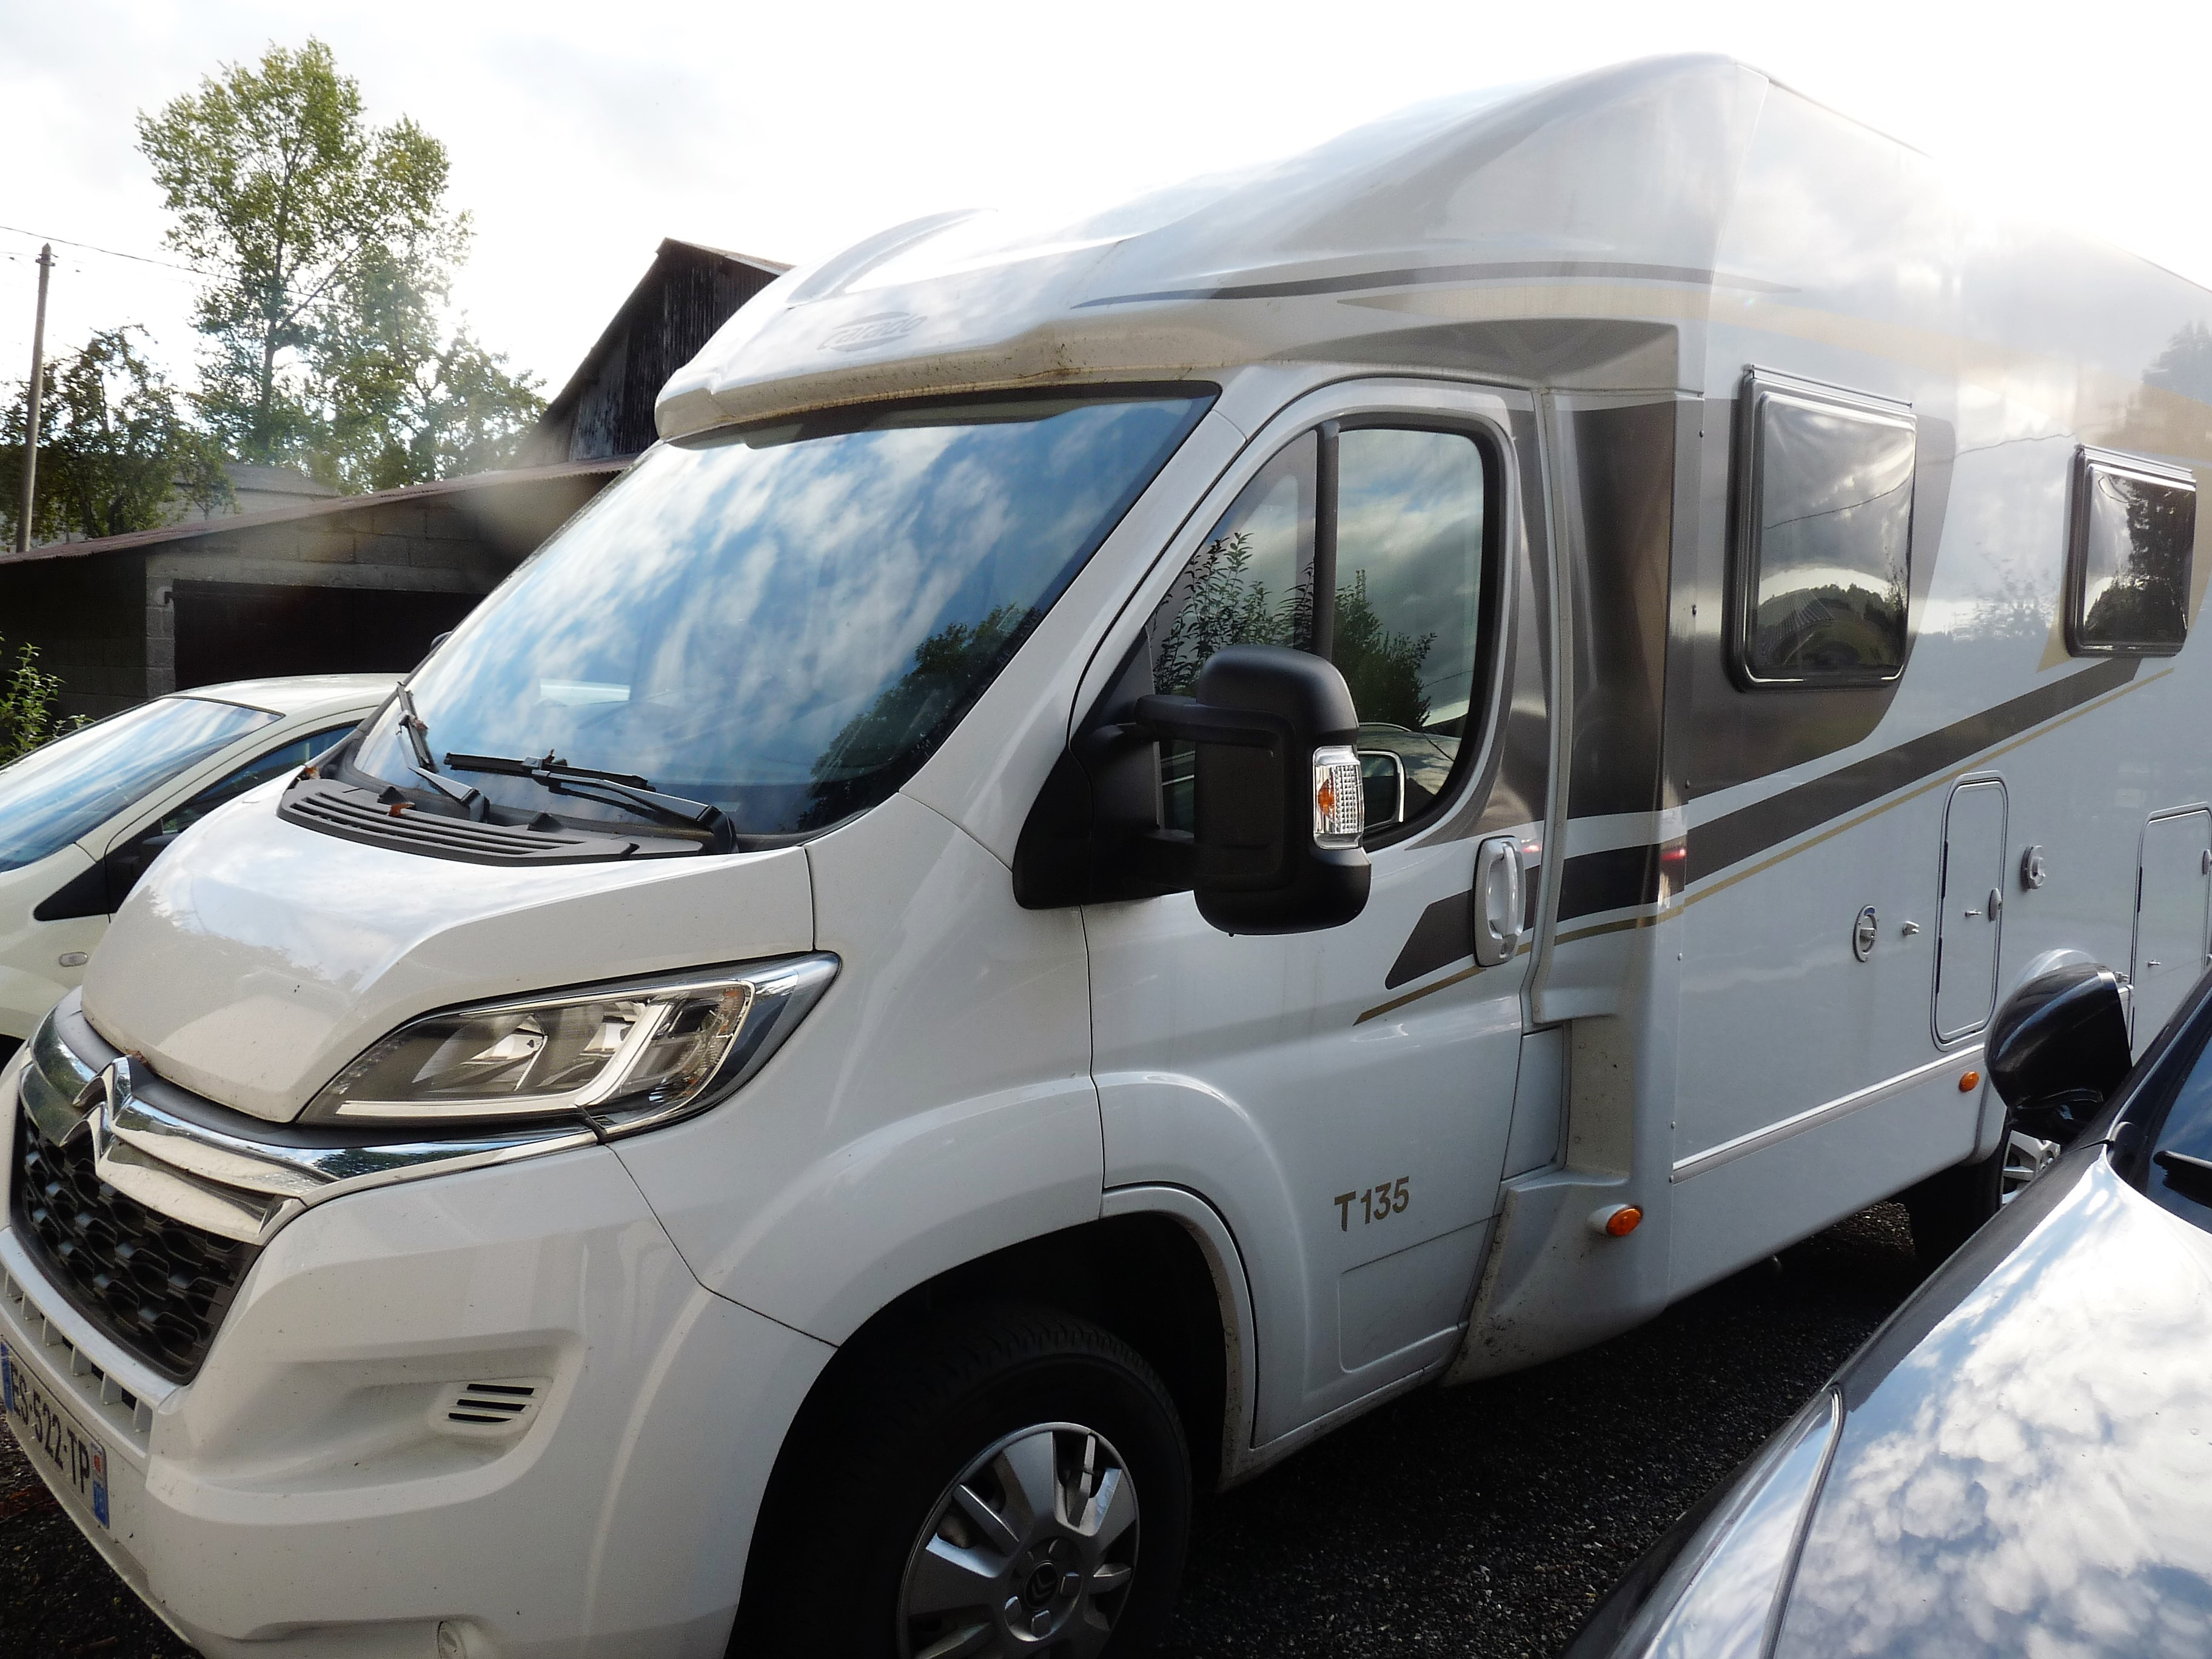 Bon coin camping car occasion particulier 79